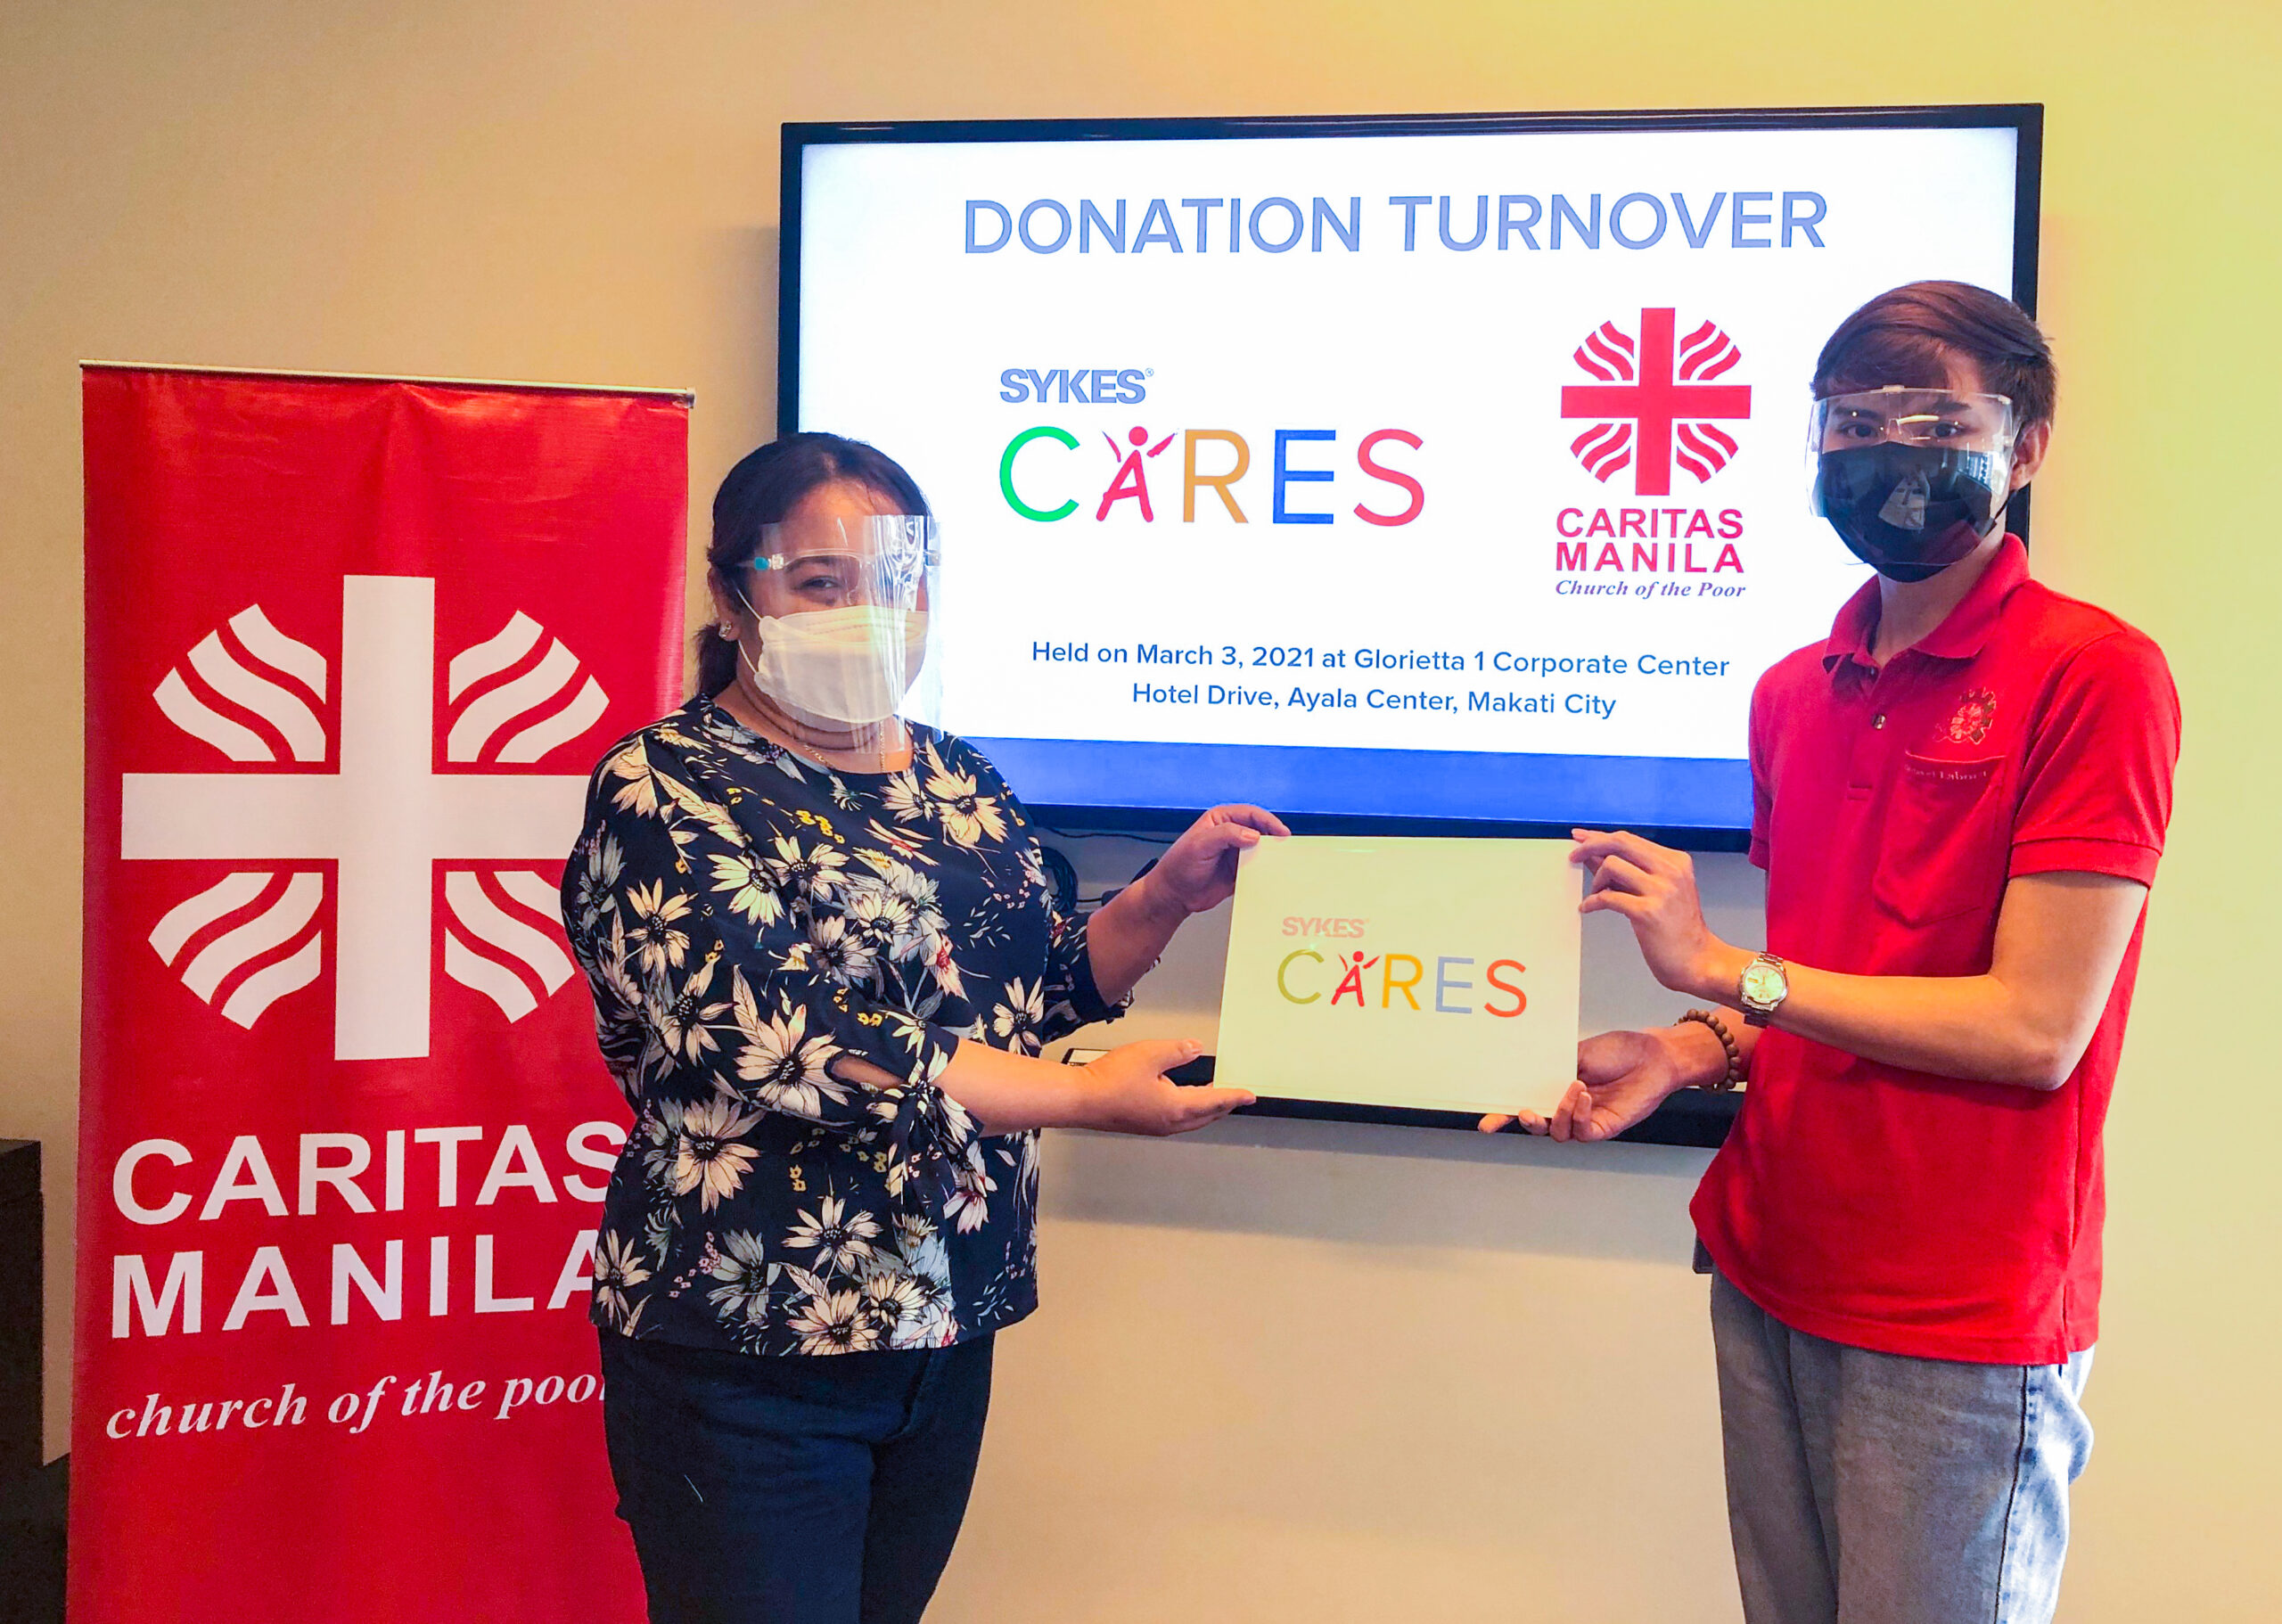 SYKES turnovers its charitable donation to Caritas Manila for the victims of the typhoon